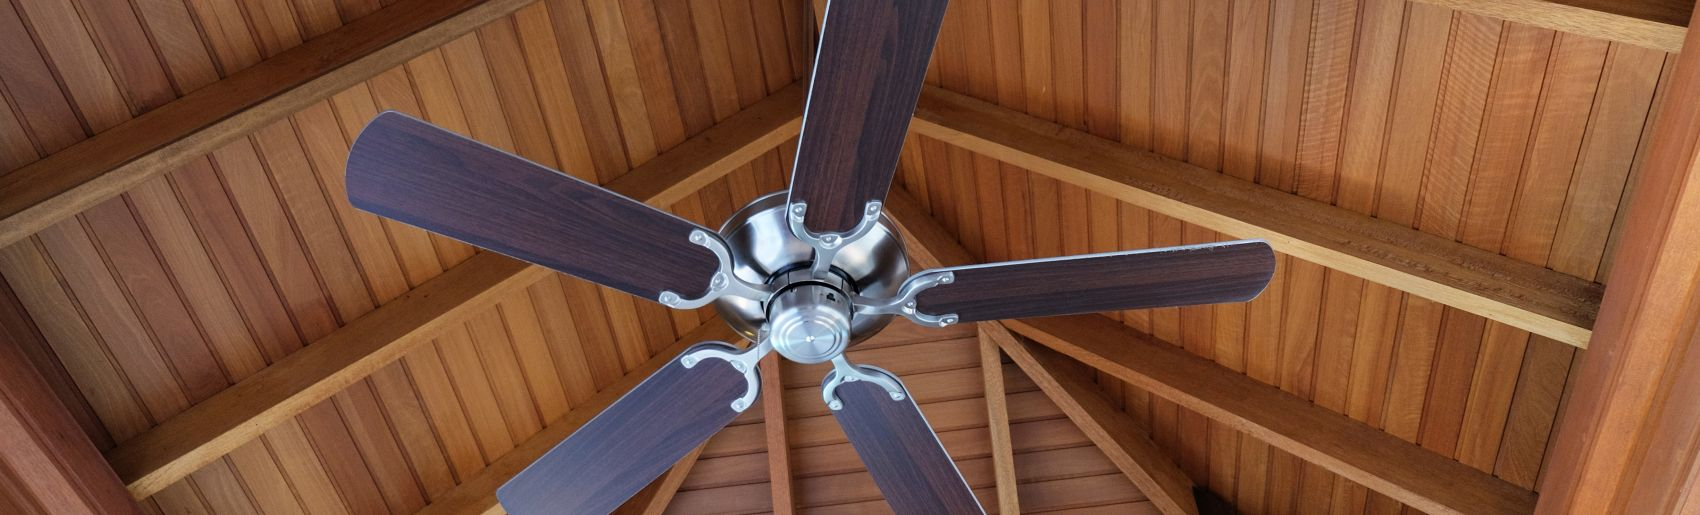 First rate ceiling fan repair services in birmingham birmingham ceiling fan repair aloadofball Choice Image